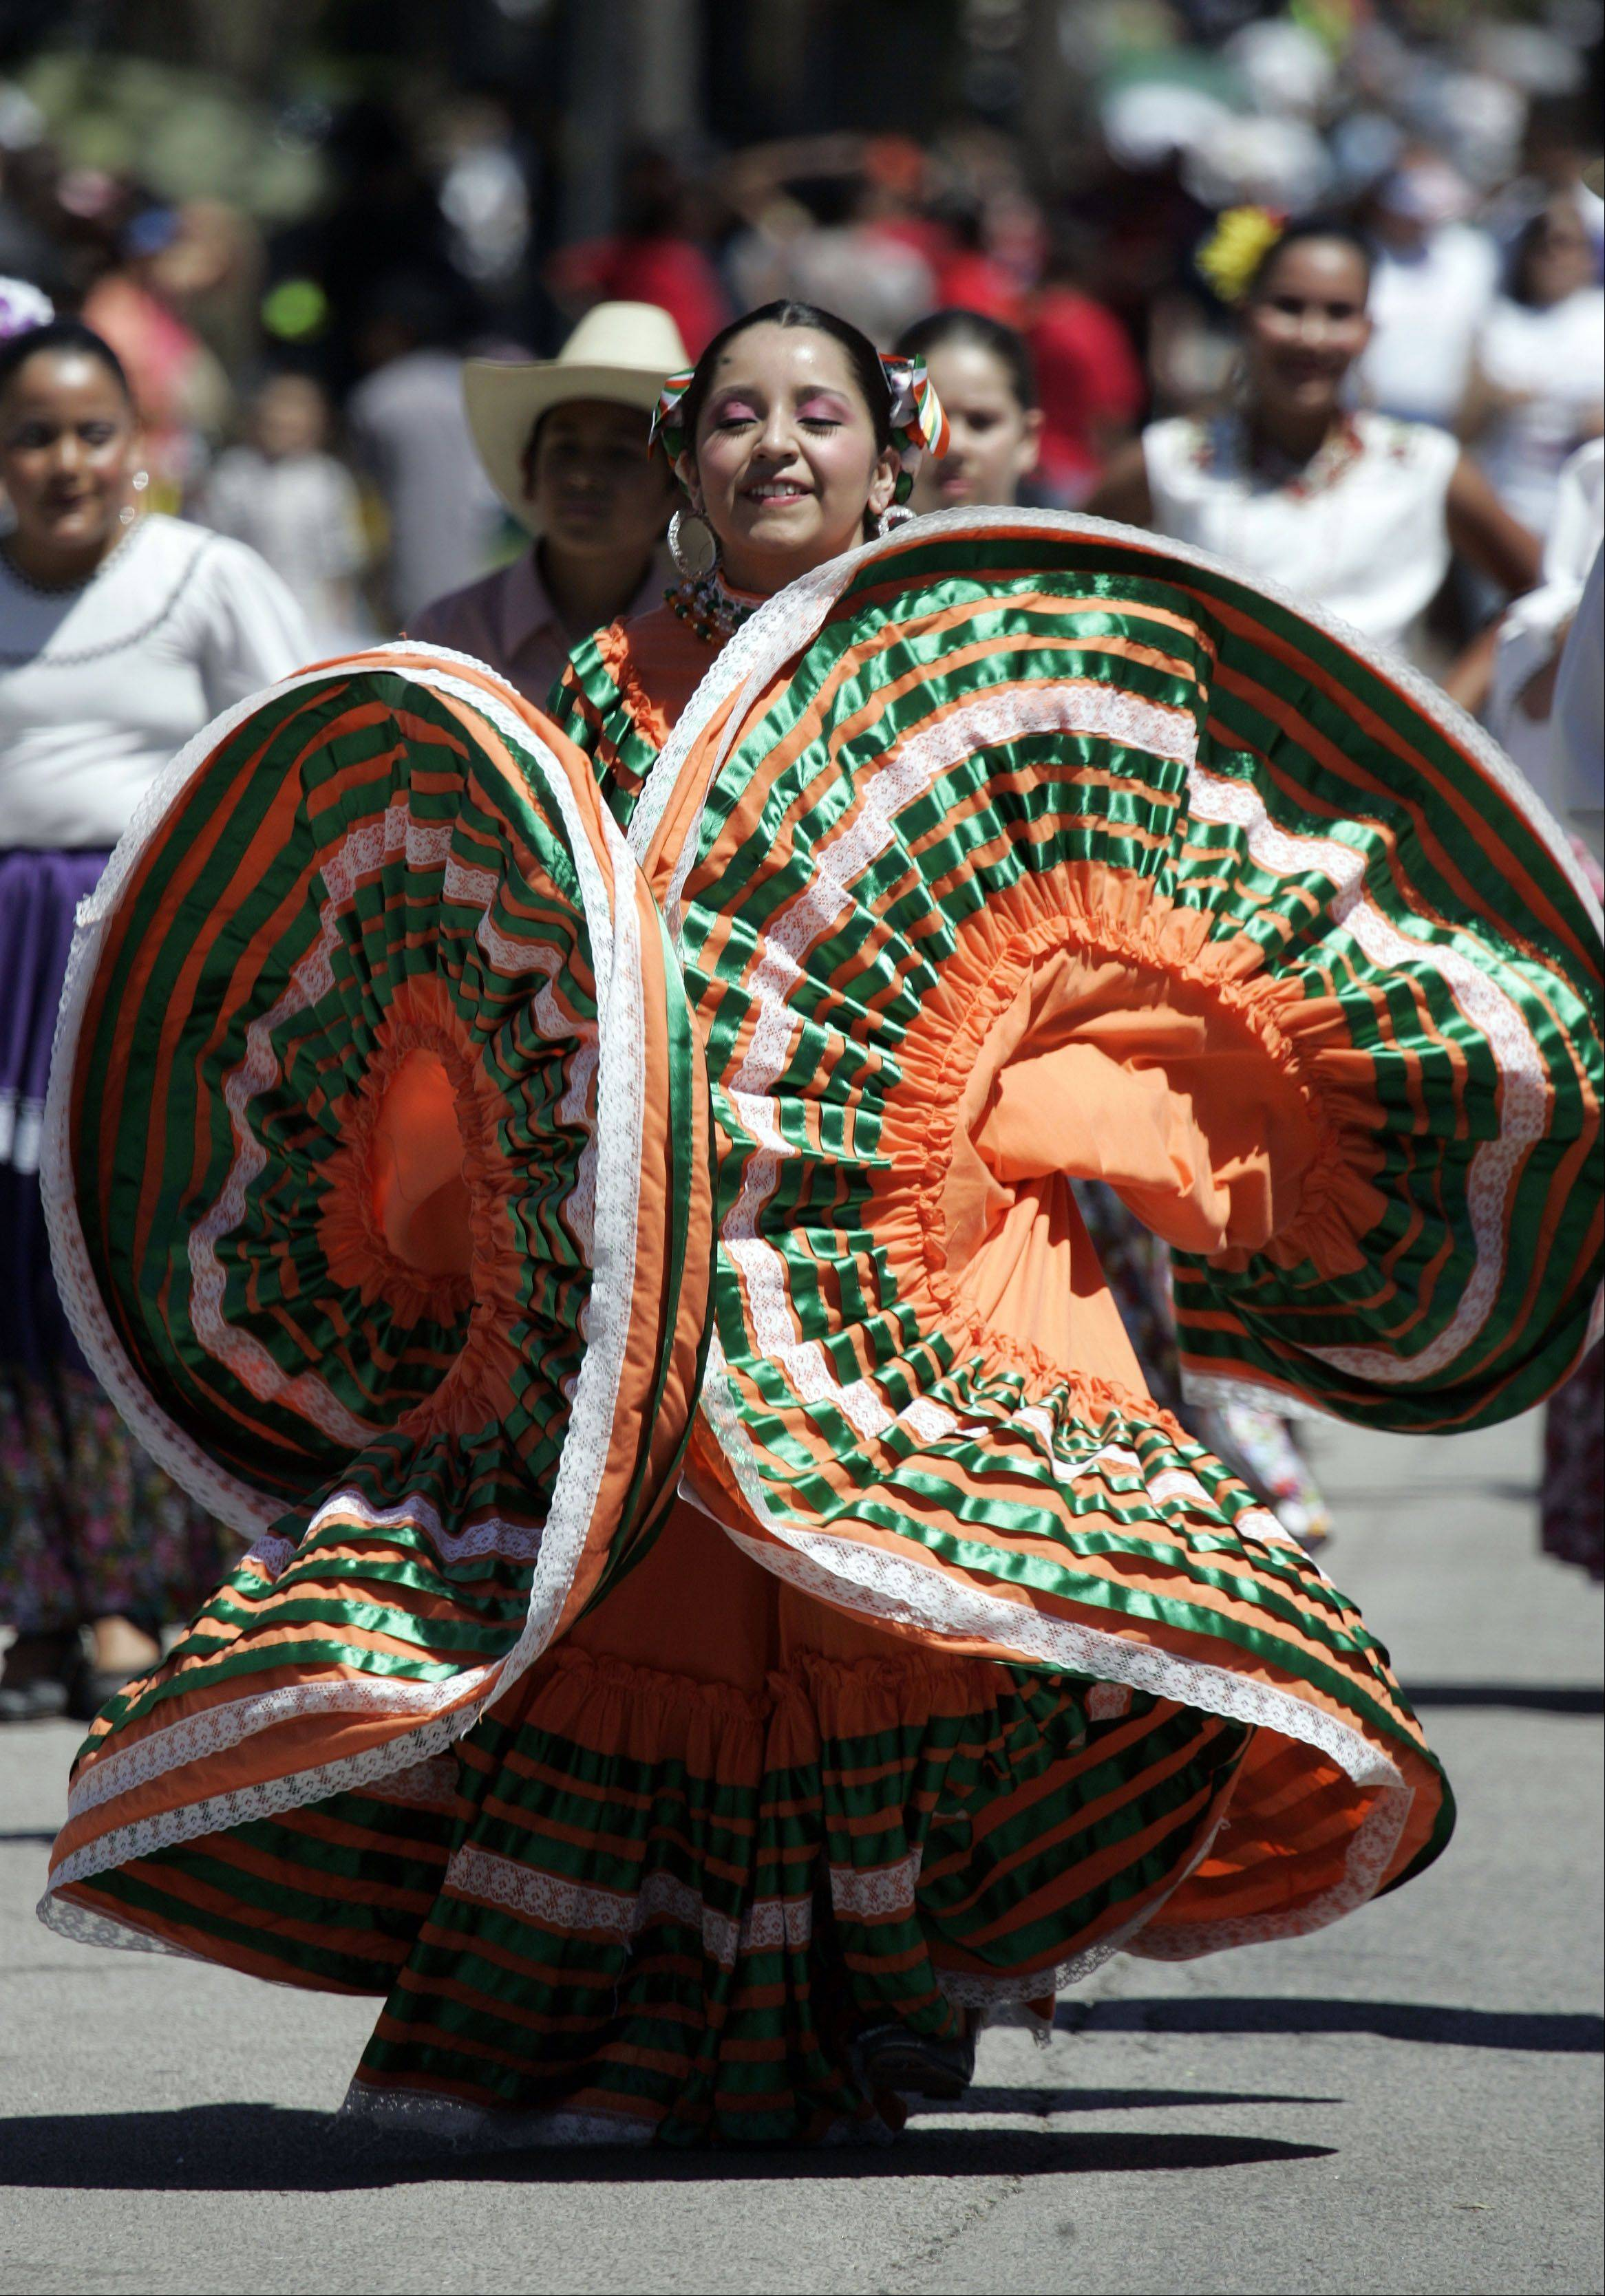 Elgin's Ballet Folklórico Huehuecoyotl will be among the entertainers at iFest, Elgin's first international festival, set for noon to 11 p.m. Saturday, Sept. 1, in Festival Park. A parade at 11 a.m. through downtown Elgin will kick off the event.